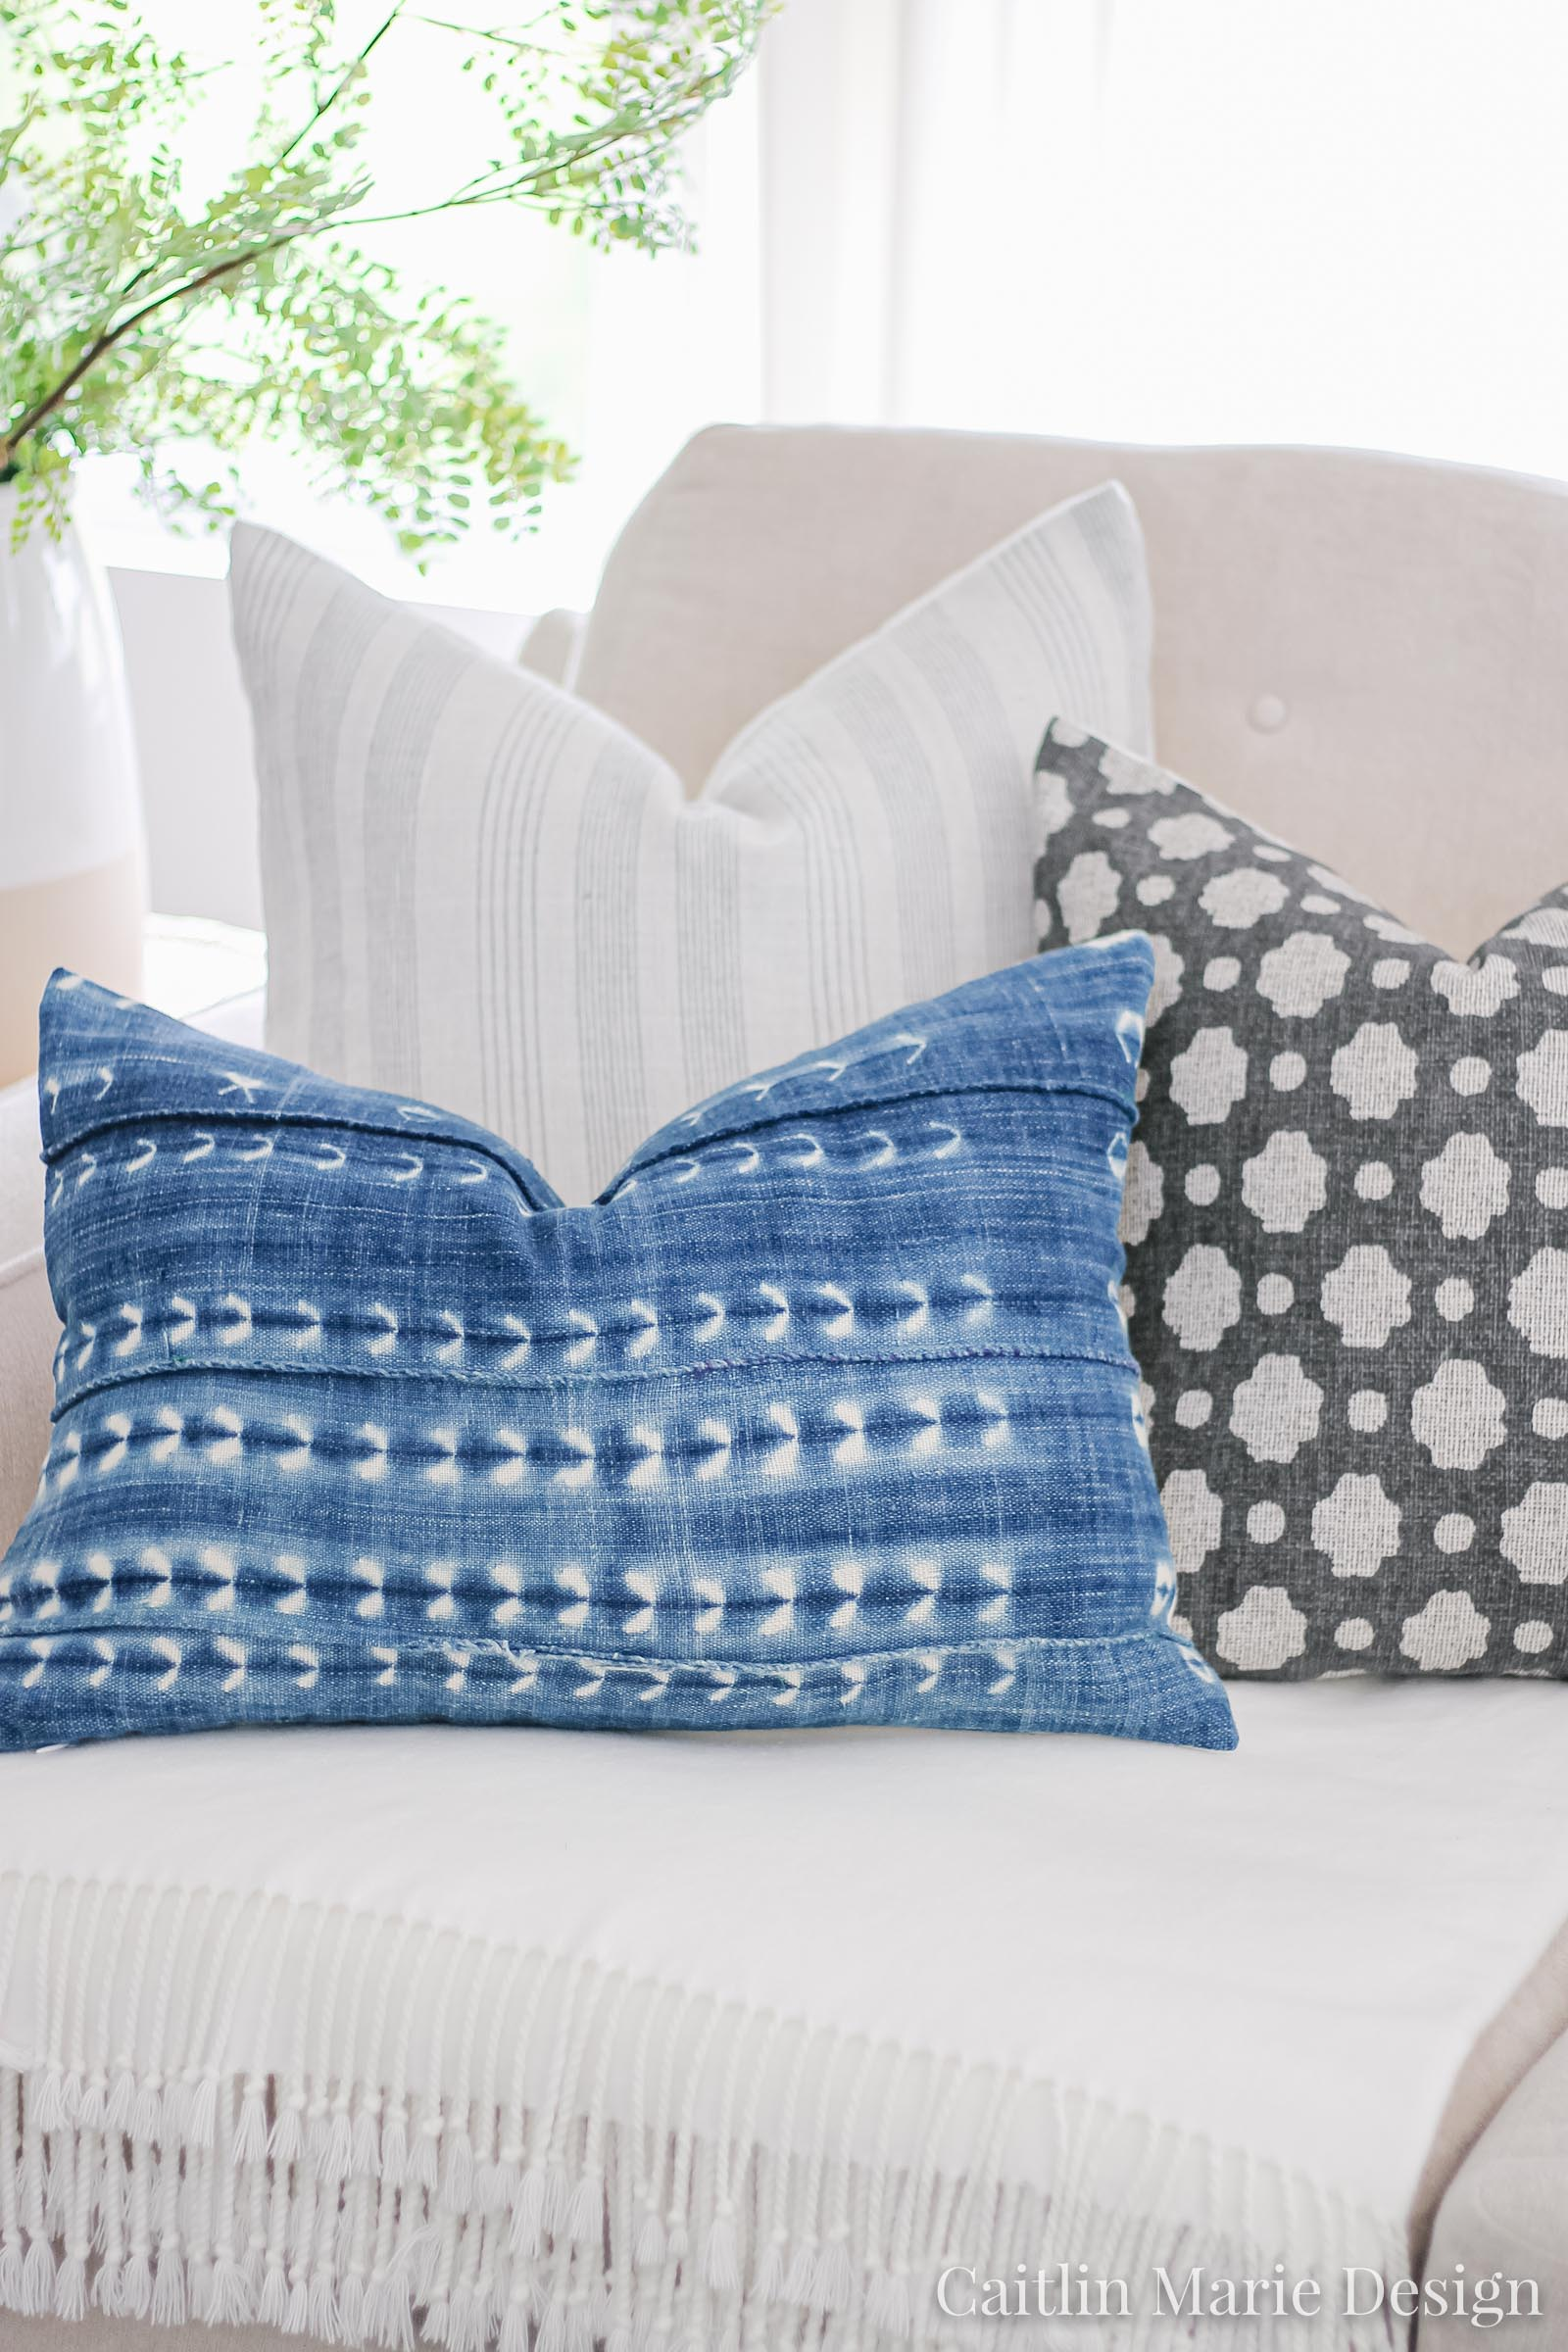 How to Layer Throw Pillows for Summer | indigo pillow, Mudcloth pillow, minimalist decor, coastal home, Etsy finds, boho decor